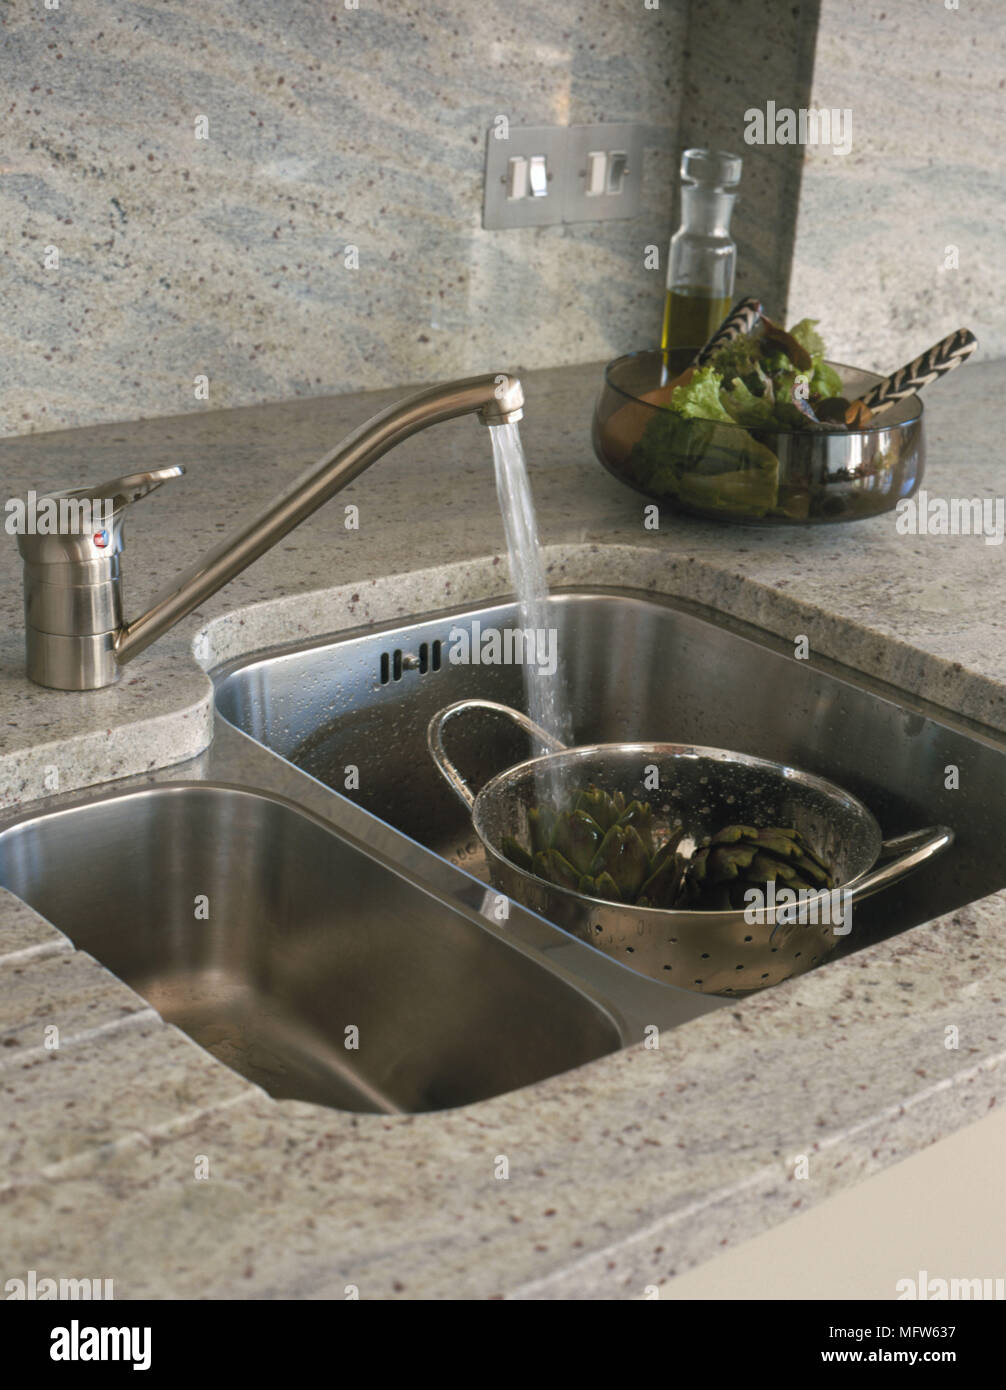 Details Of A Modern Stainless Steel Kitchen Sink With A Colander Surrounded  By A Polished Stone Work Surface.